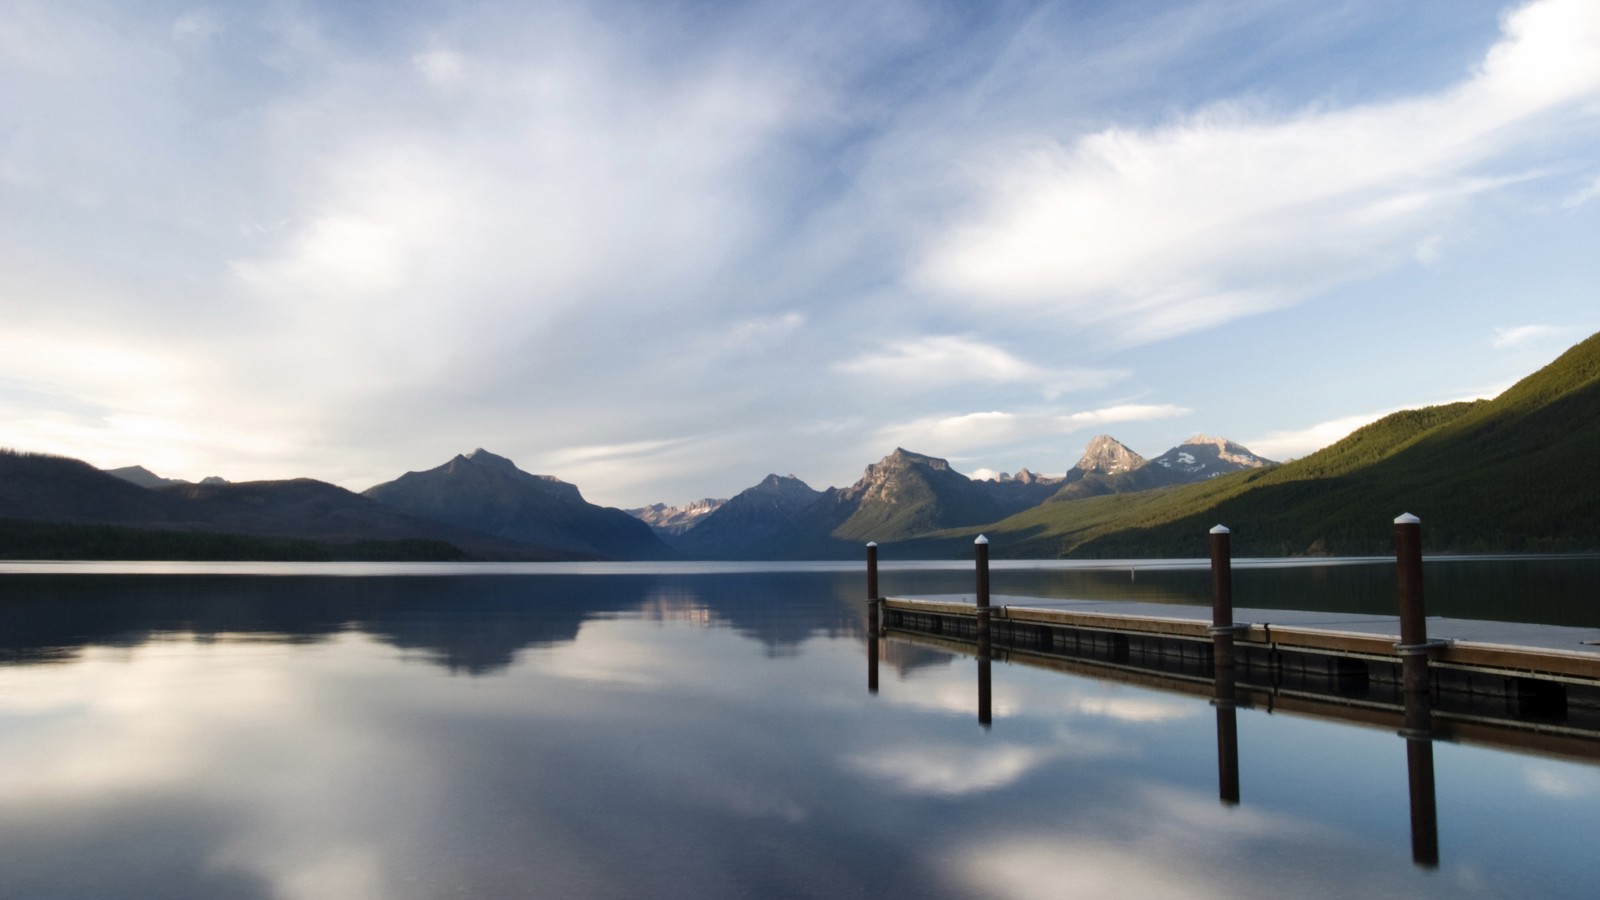 Lake Macdonald in Glacier National Park, Montana